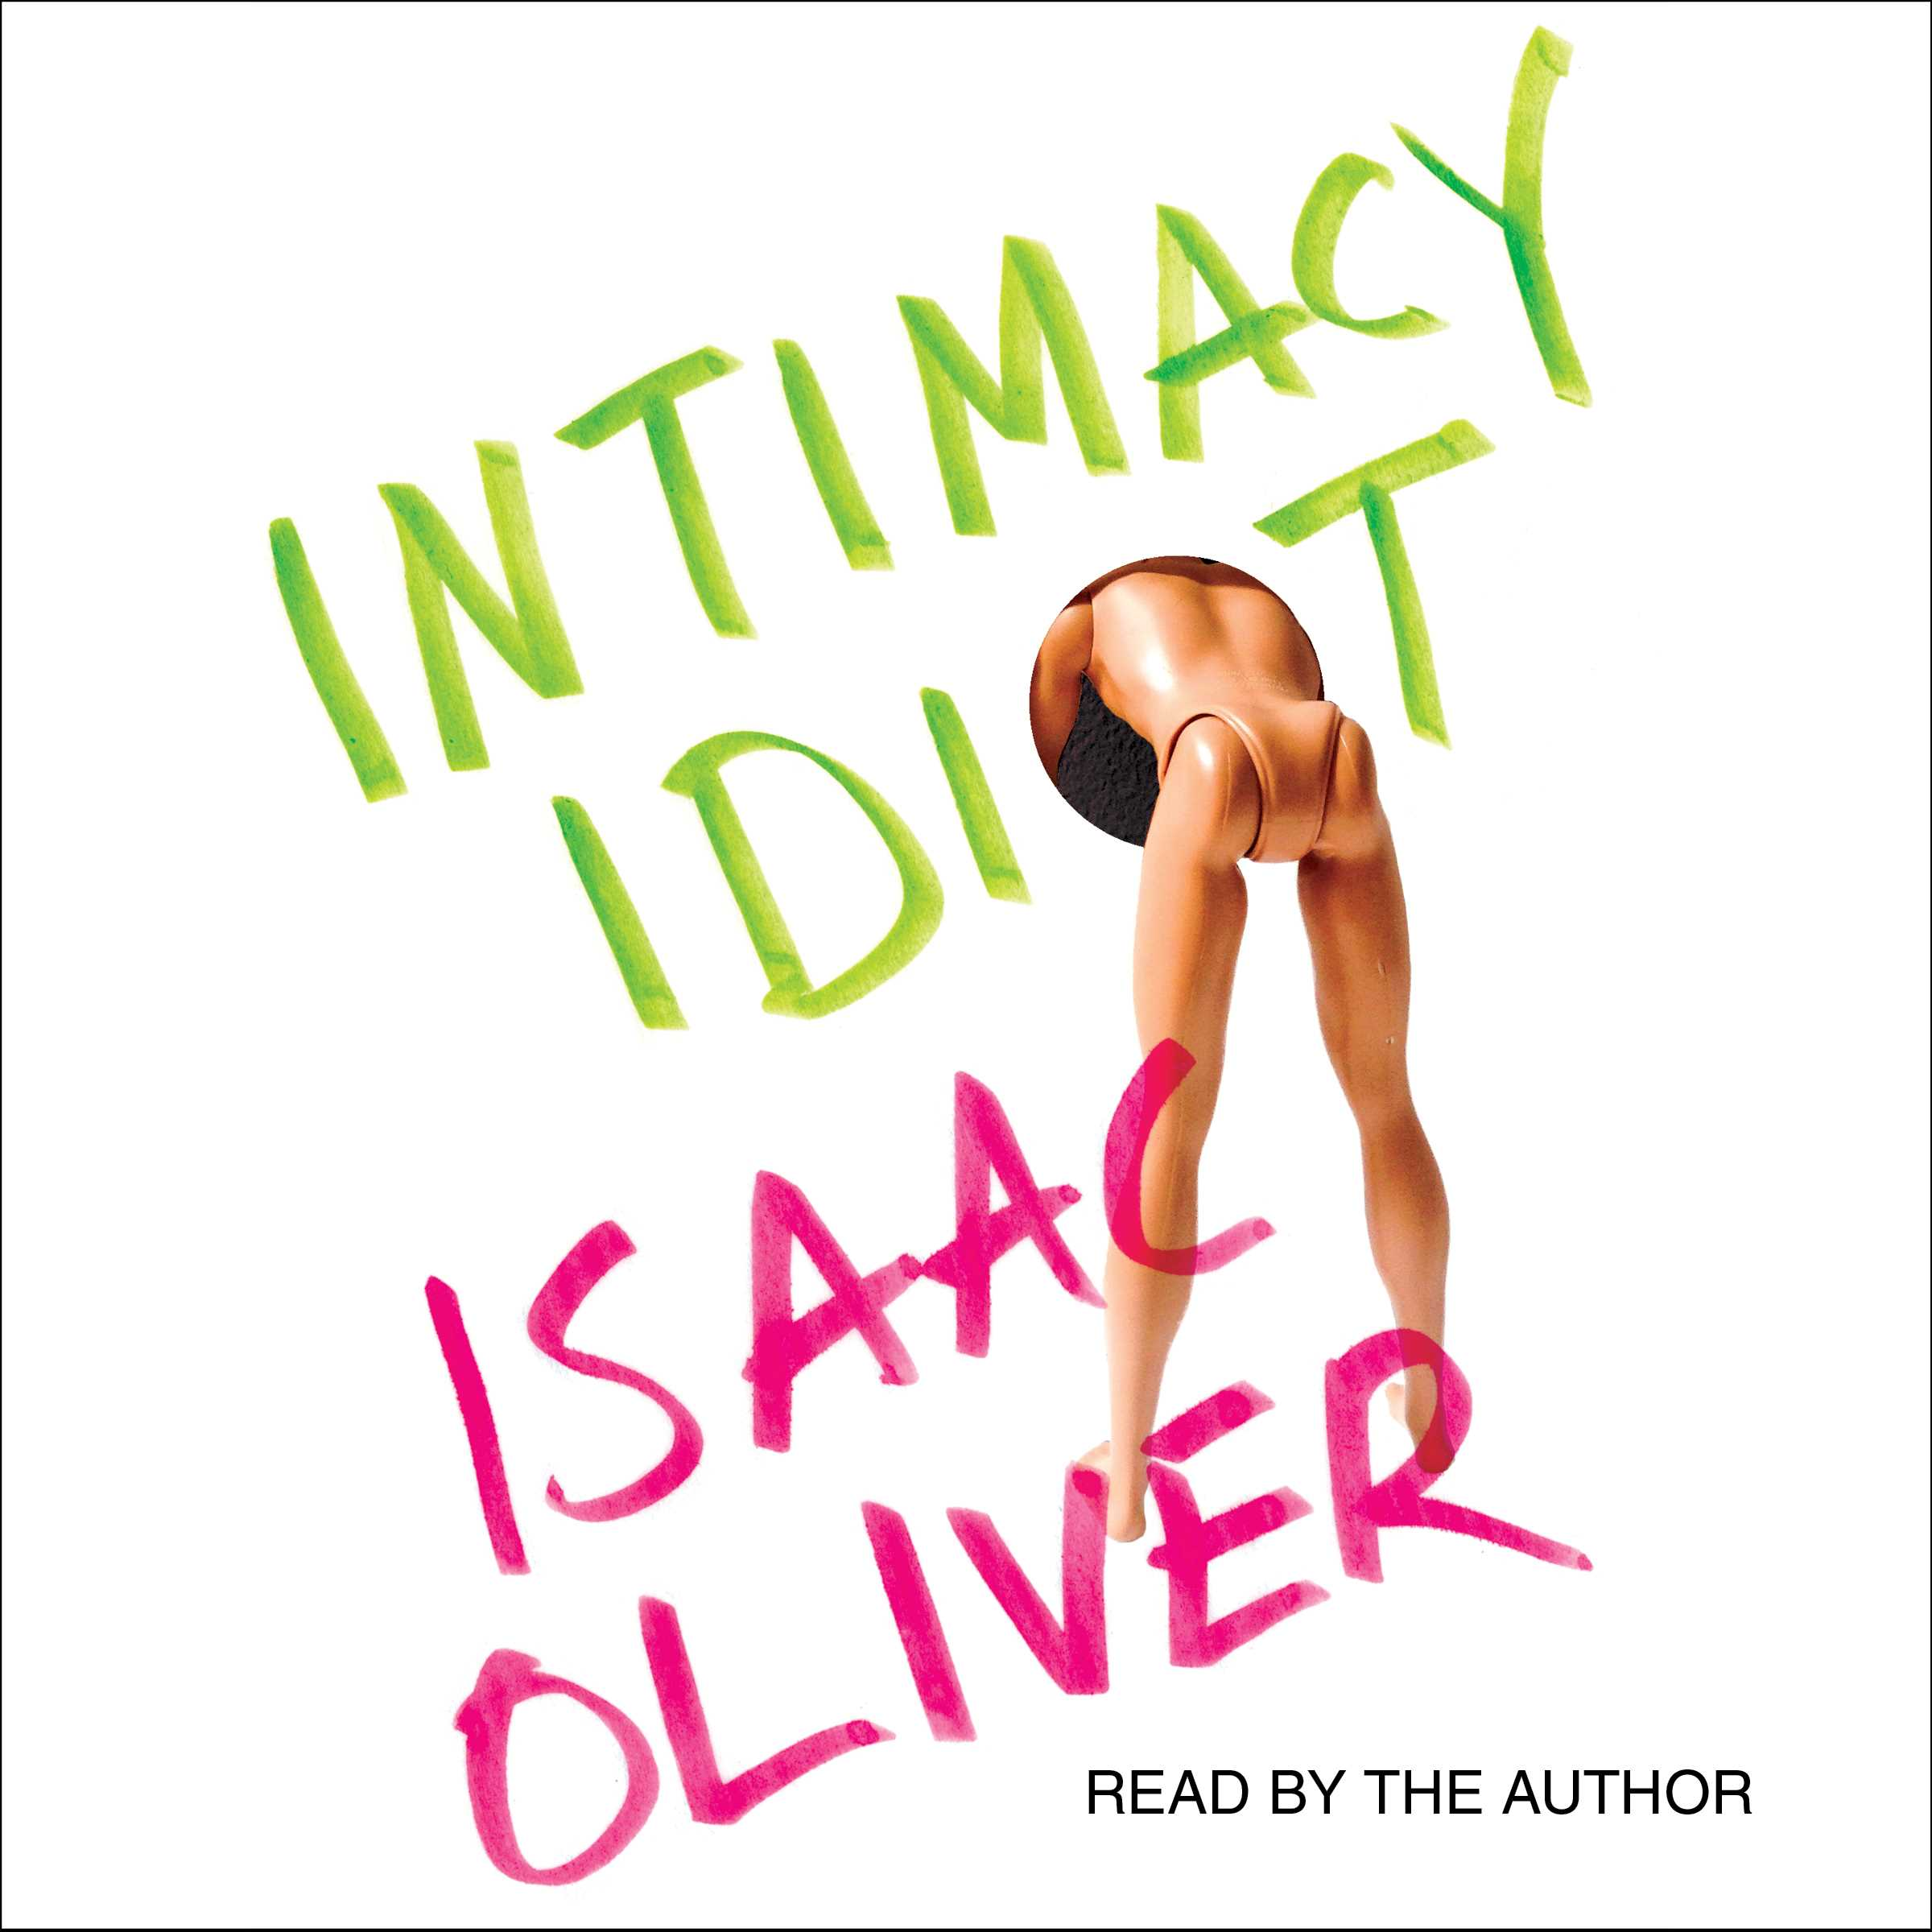 Intimacy Idiot